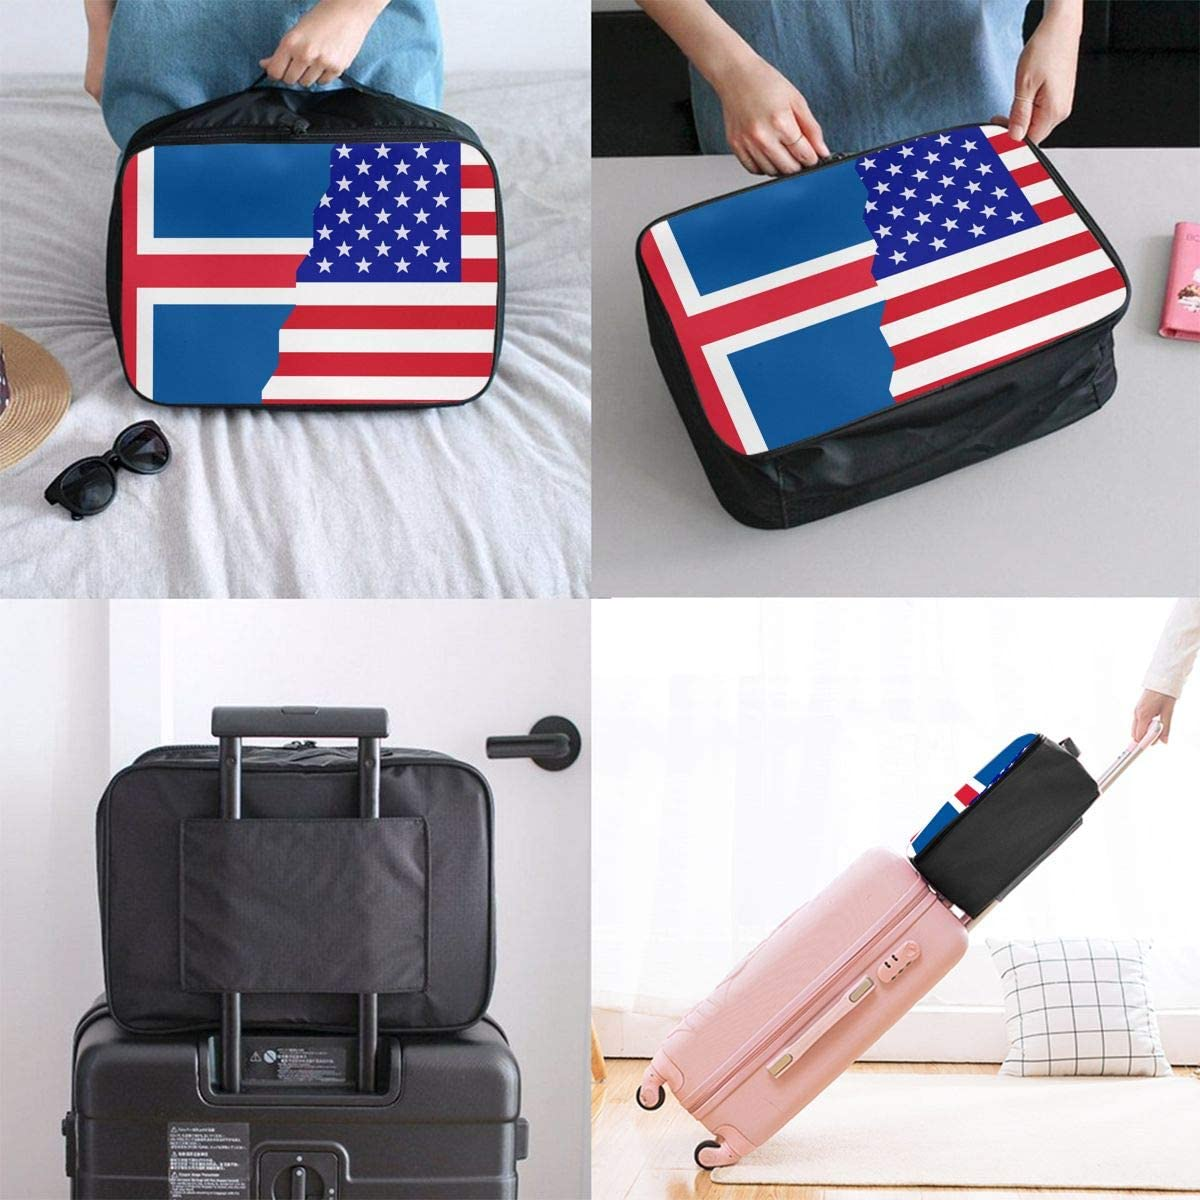 American Iceland Flag Overnight Carry On Luggage Waterproof Fashion Travel Bag Lightweight Suitcases